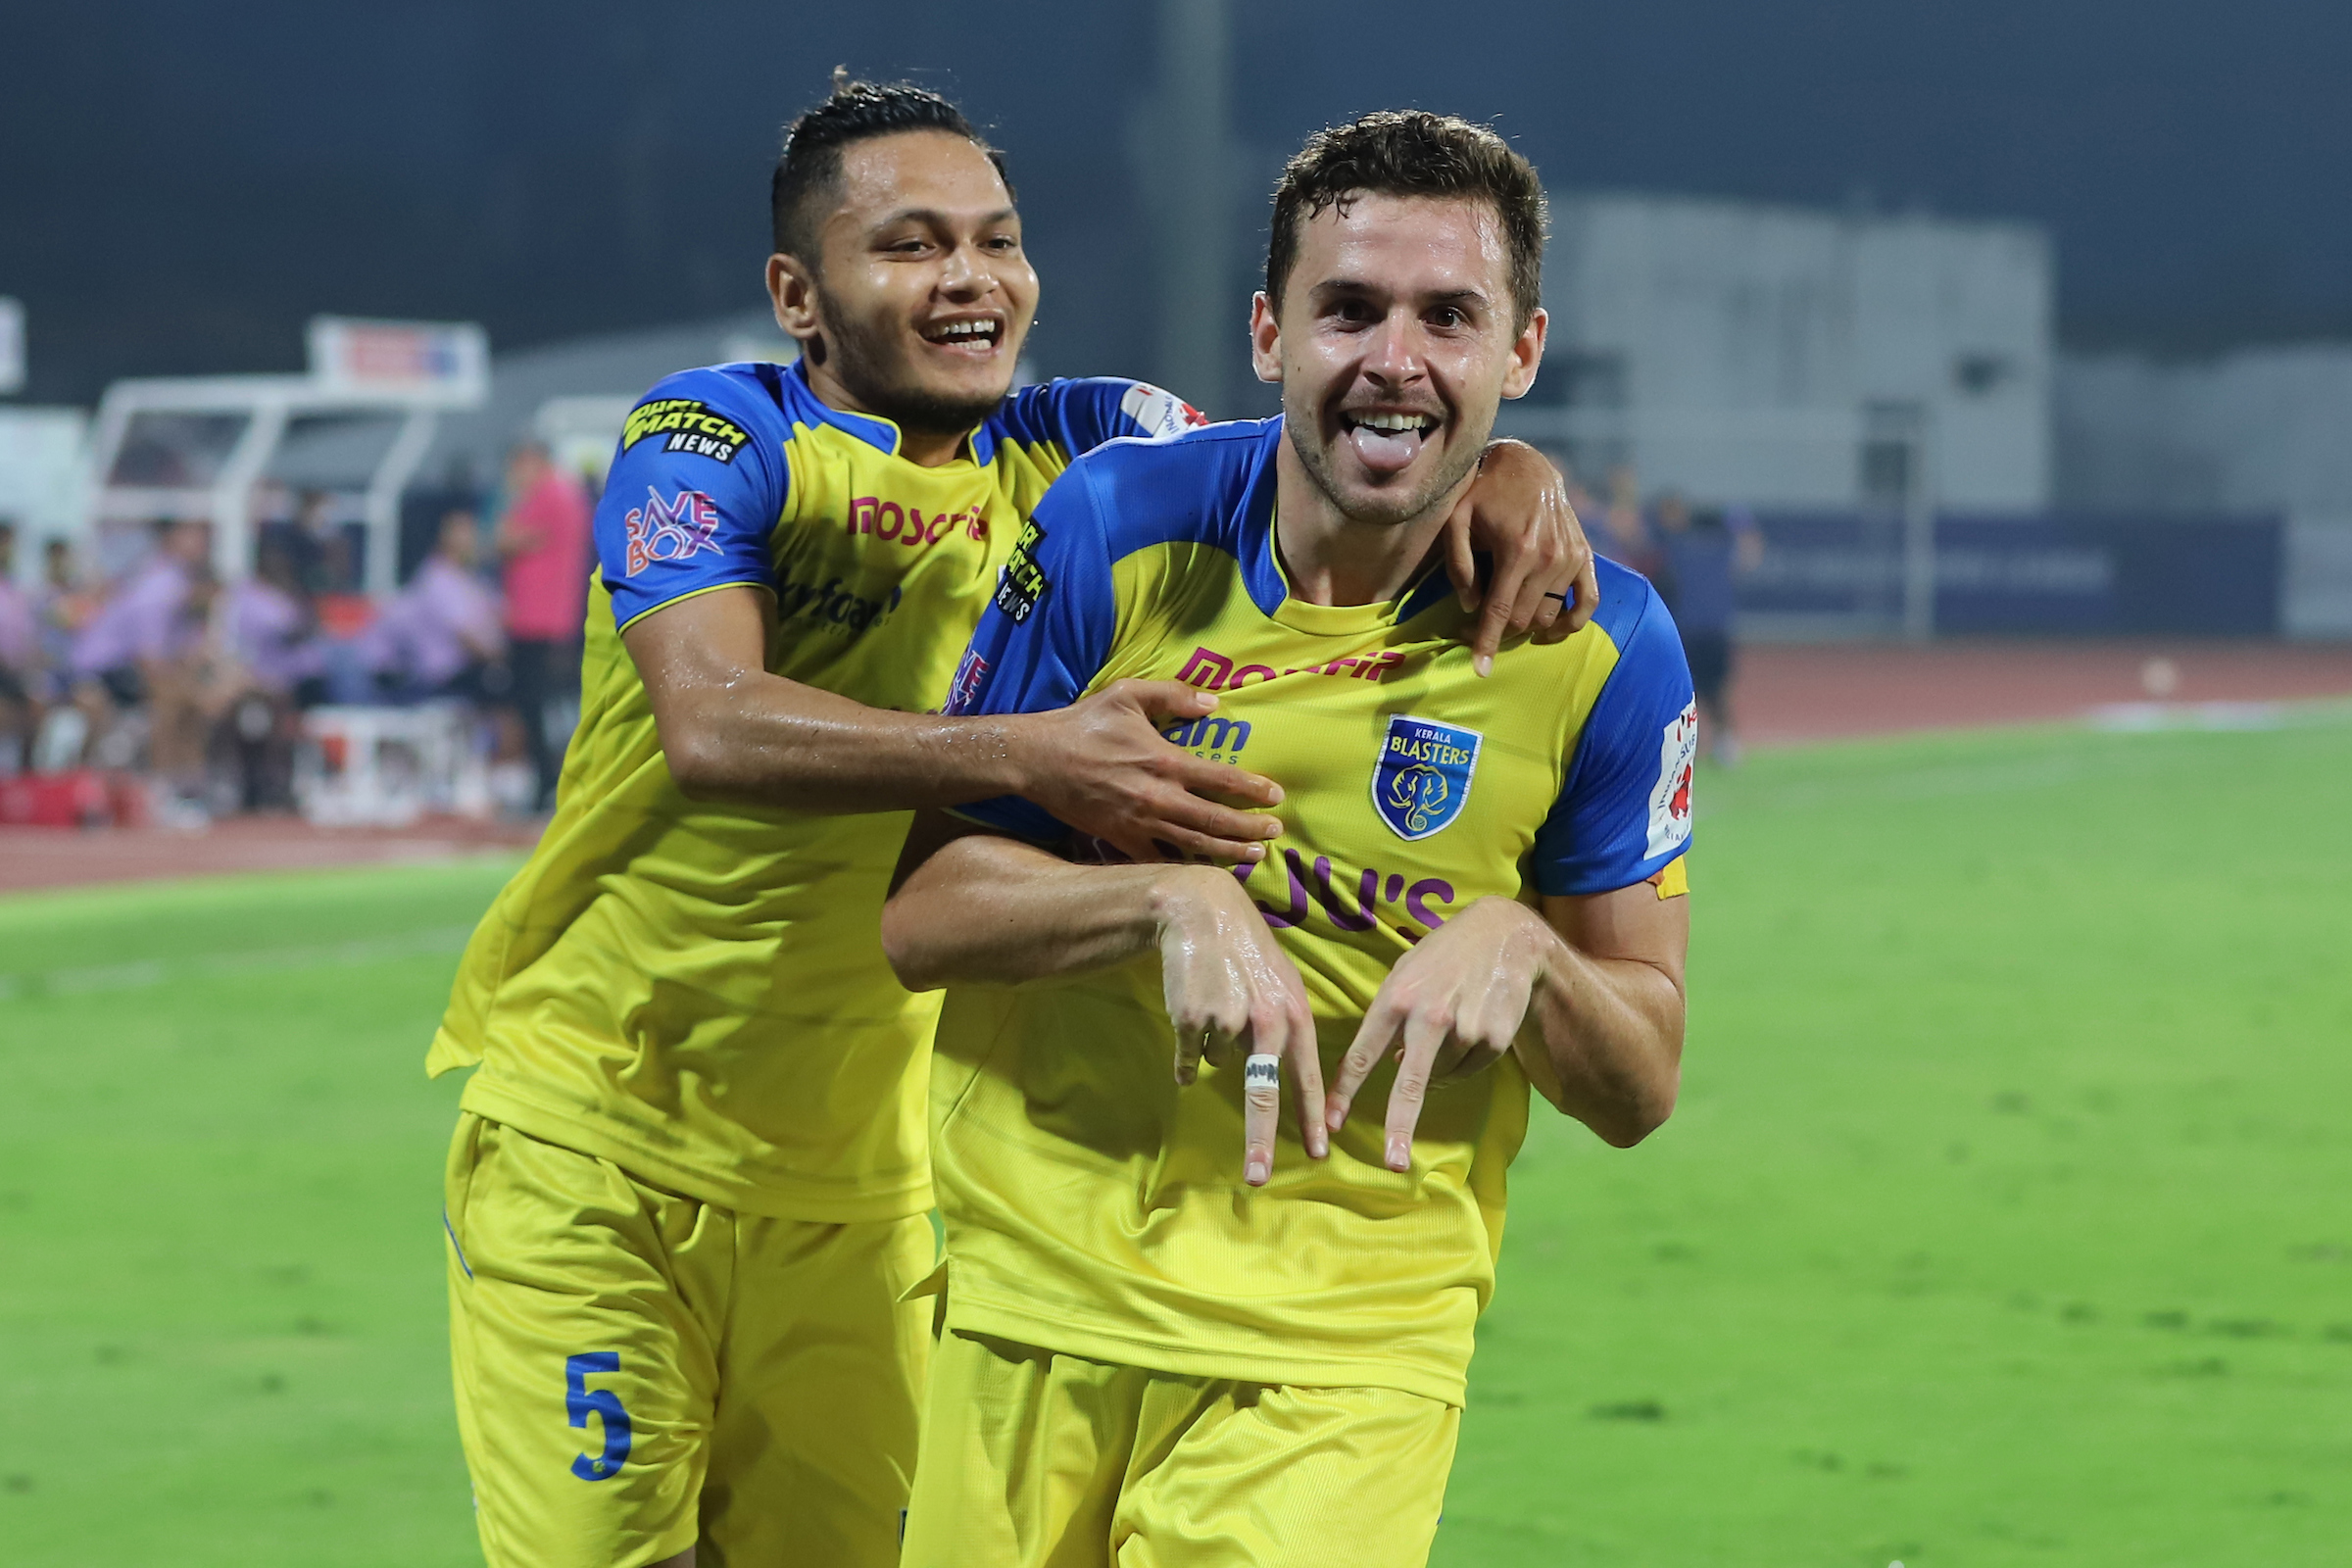 'B for Better' - Kerala Blasters 'B' clicks to give Kibu Vicuna a selection headache